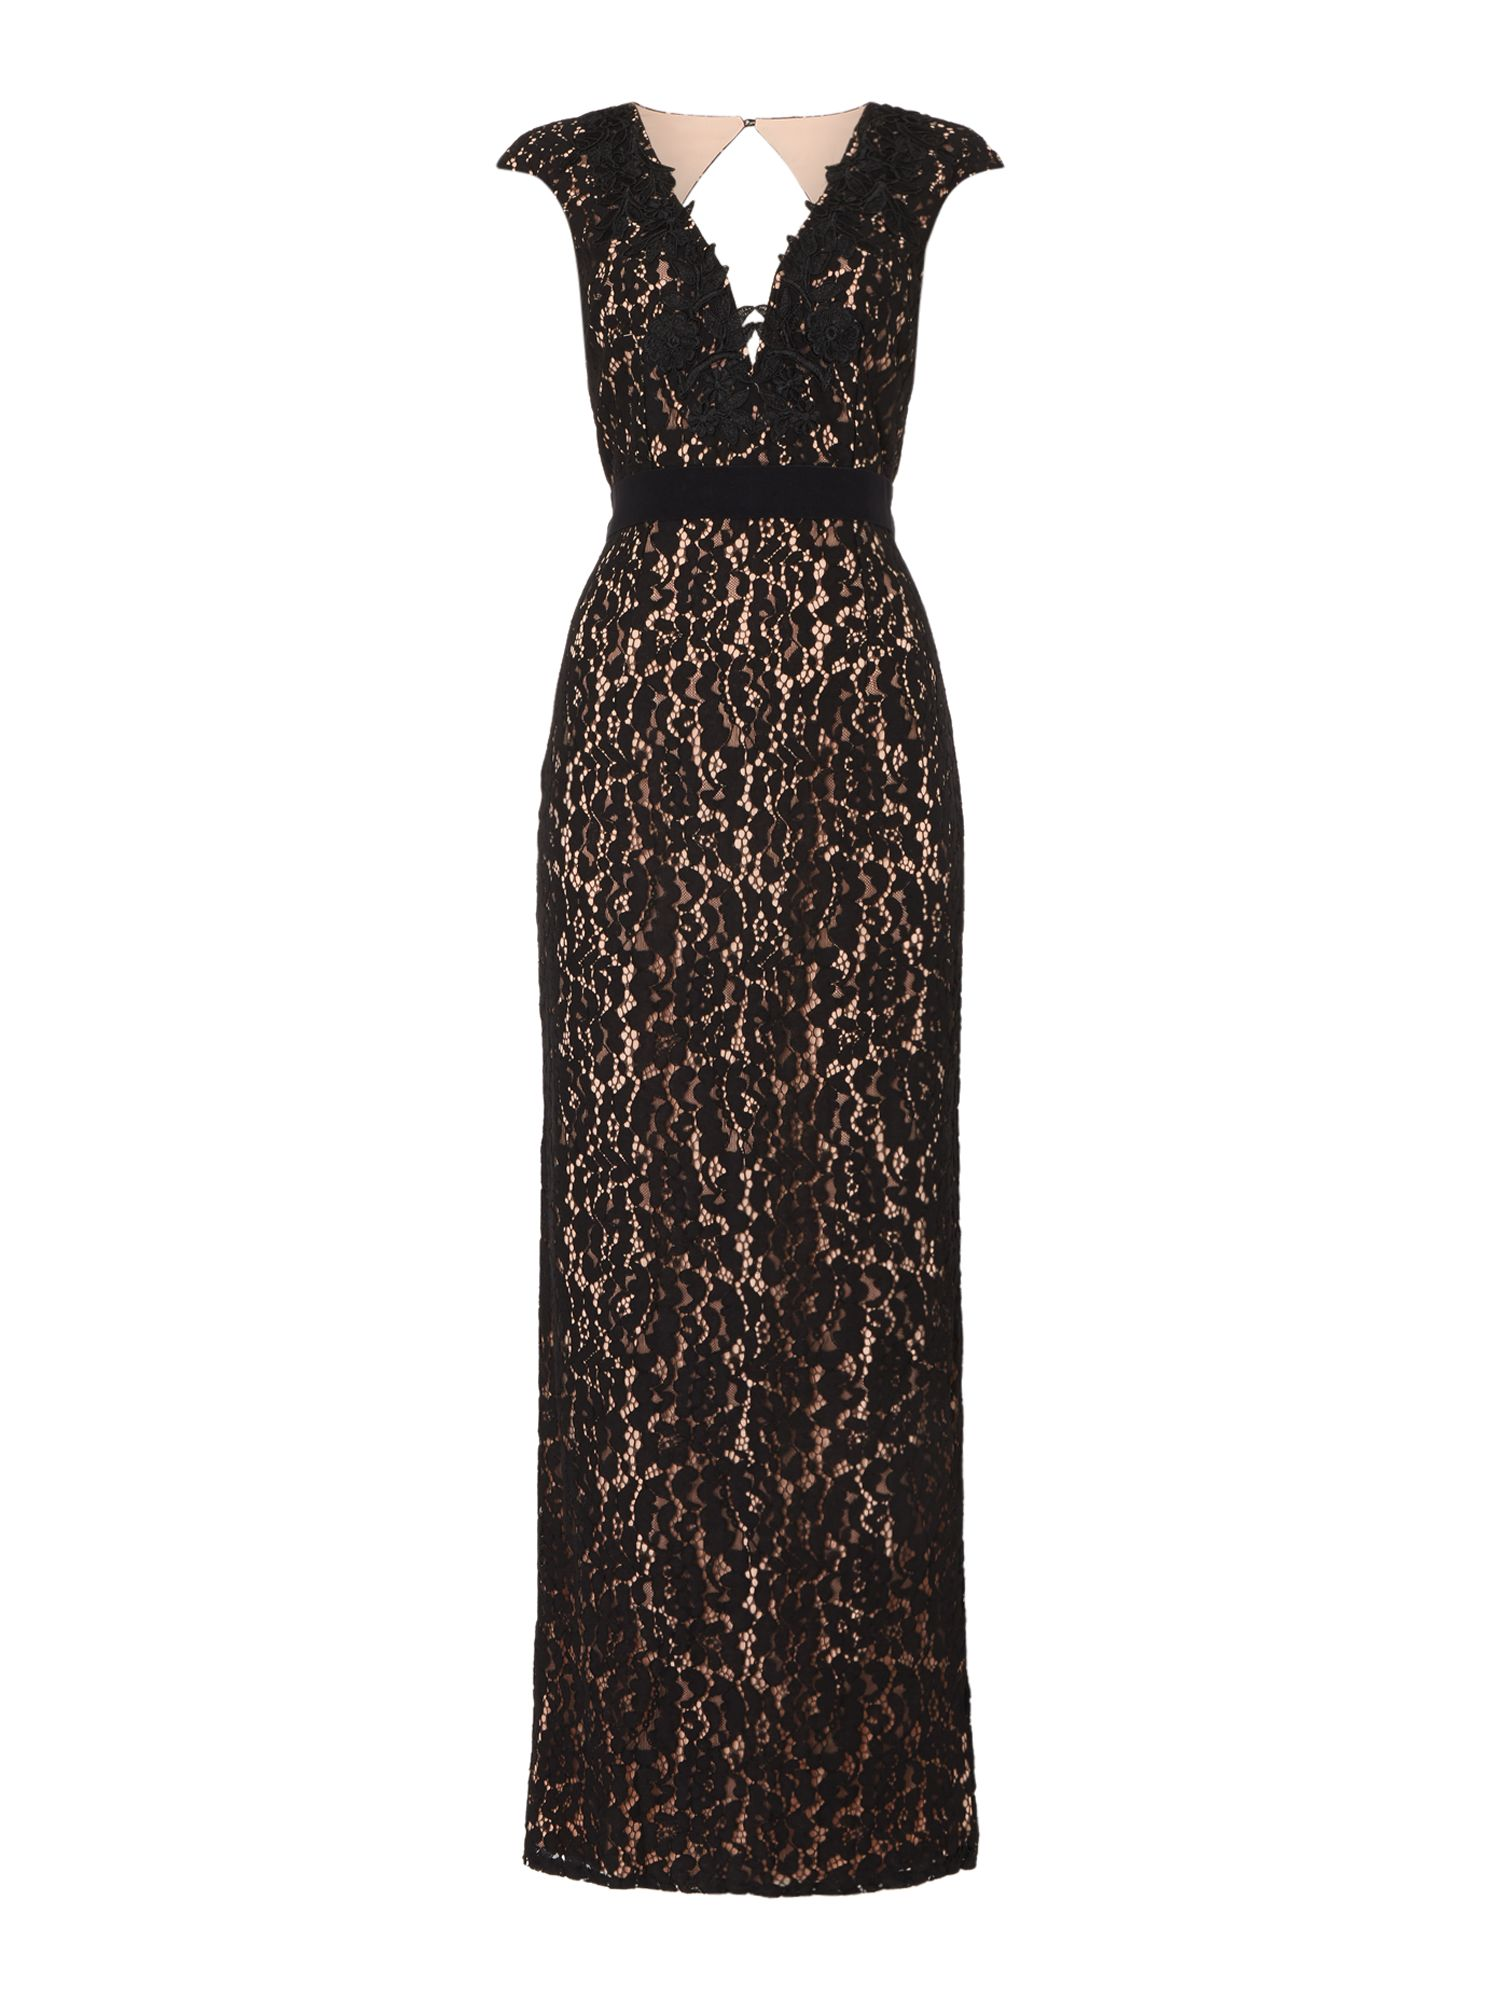 Little Mistress Sleeveless plunge neck with contrast lace dress, Black